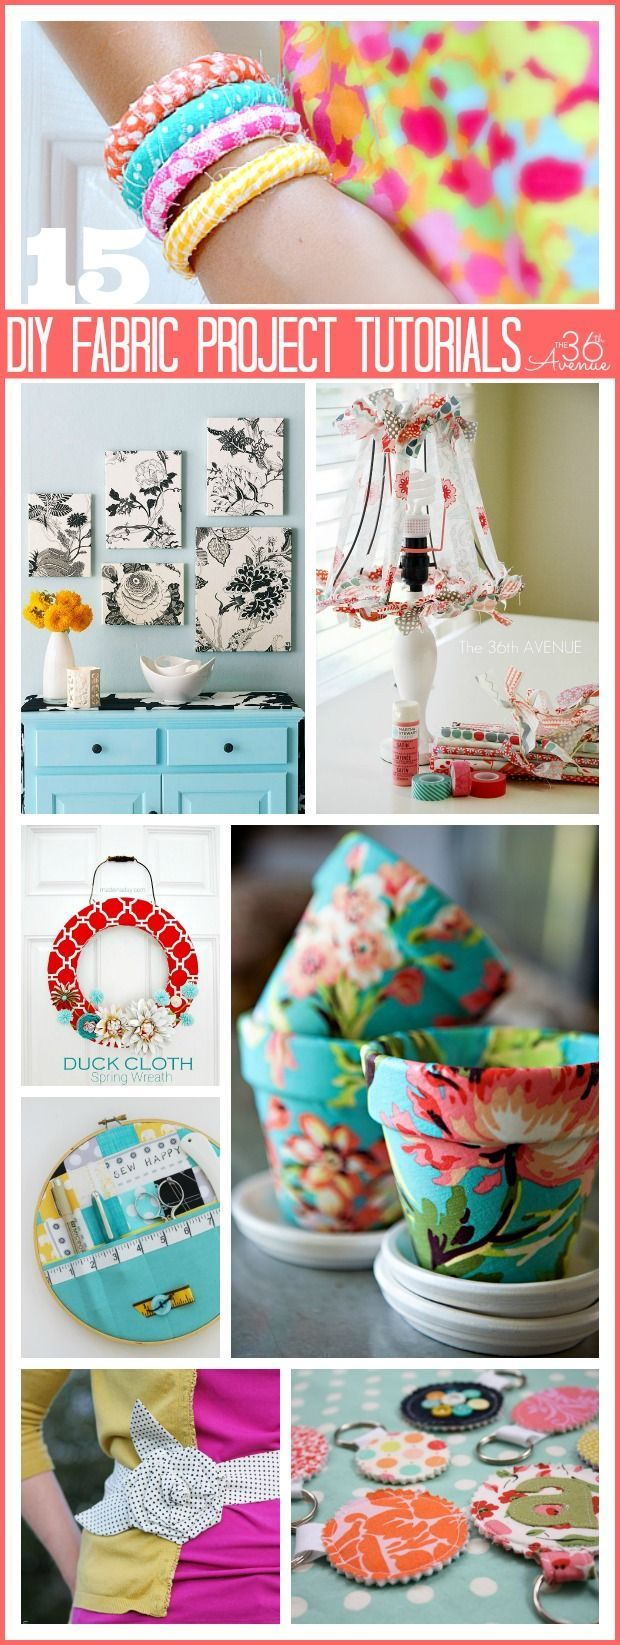 200 Best Images About Scrap Buster Sewing Tutorials On Pinterest Potholders Tutorials And